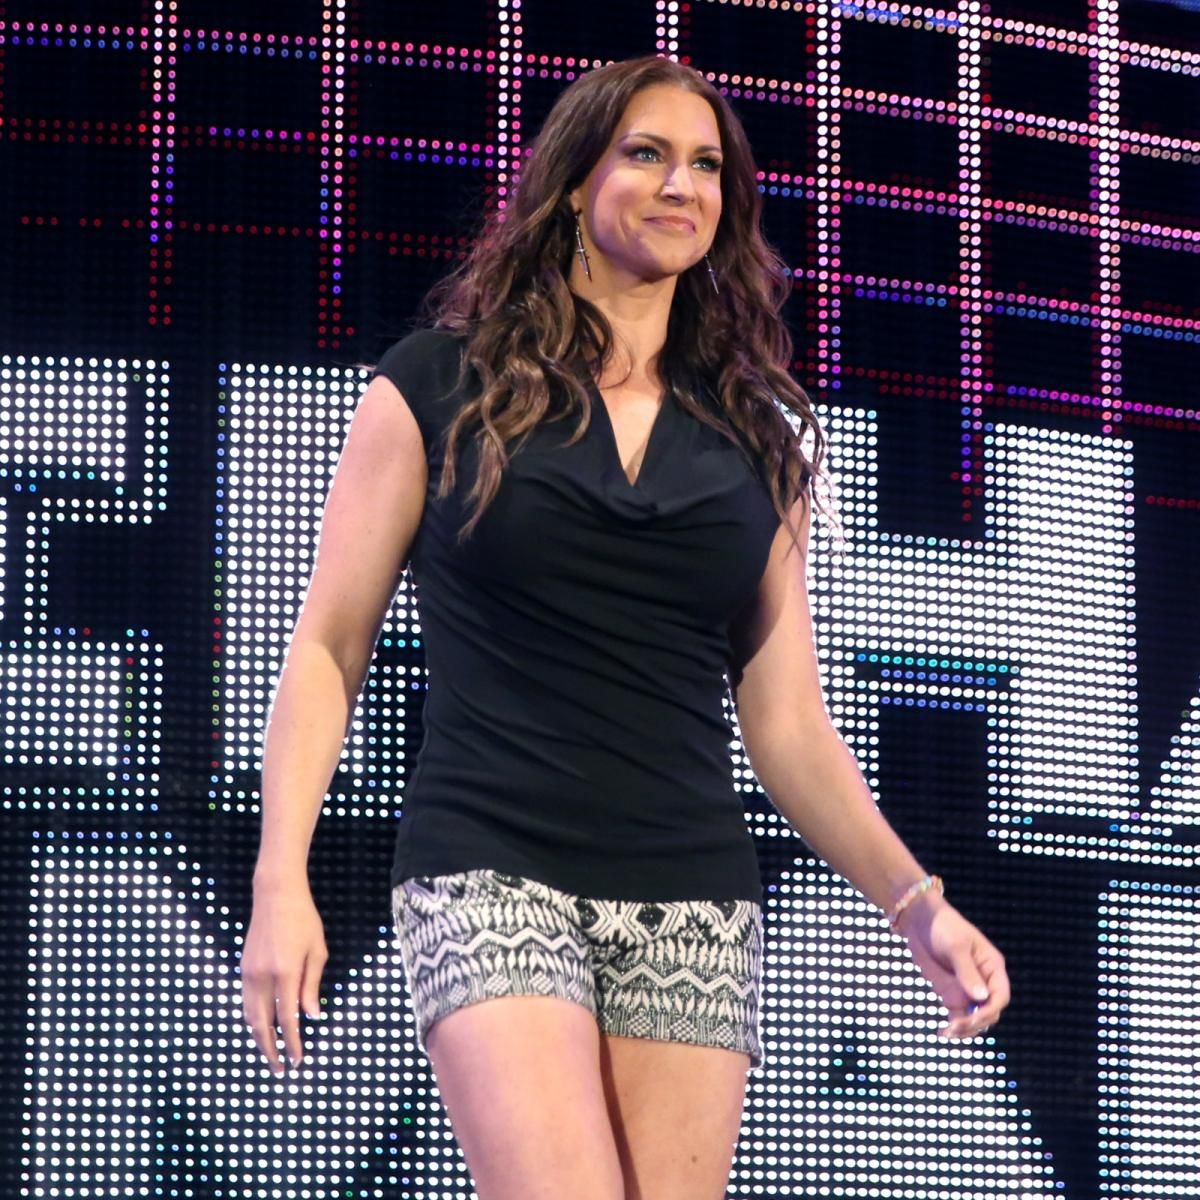 75 Hot Pictures Of Stephanie Mcmahon Wwe Diva  Best Of -4630